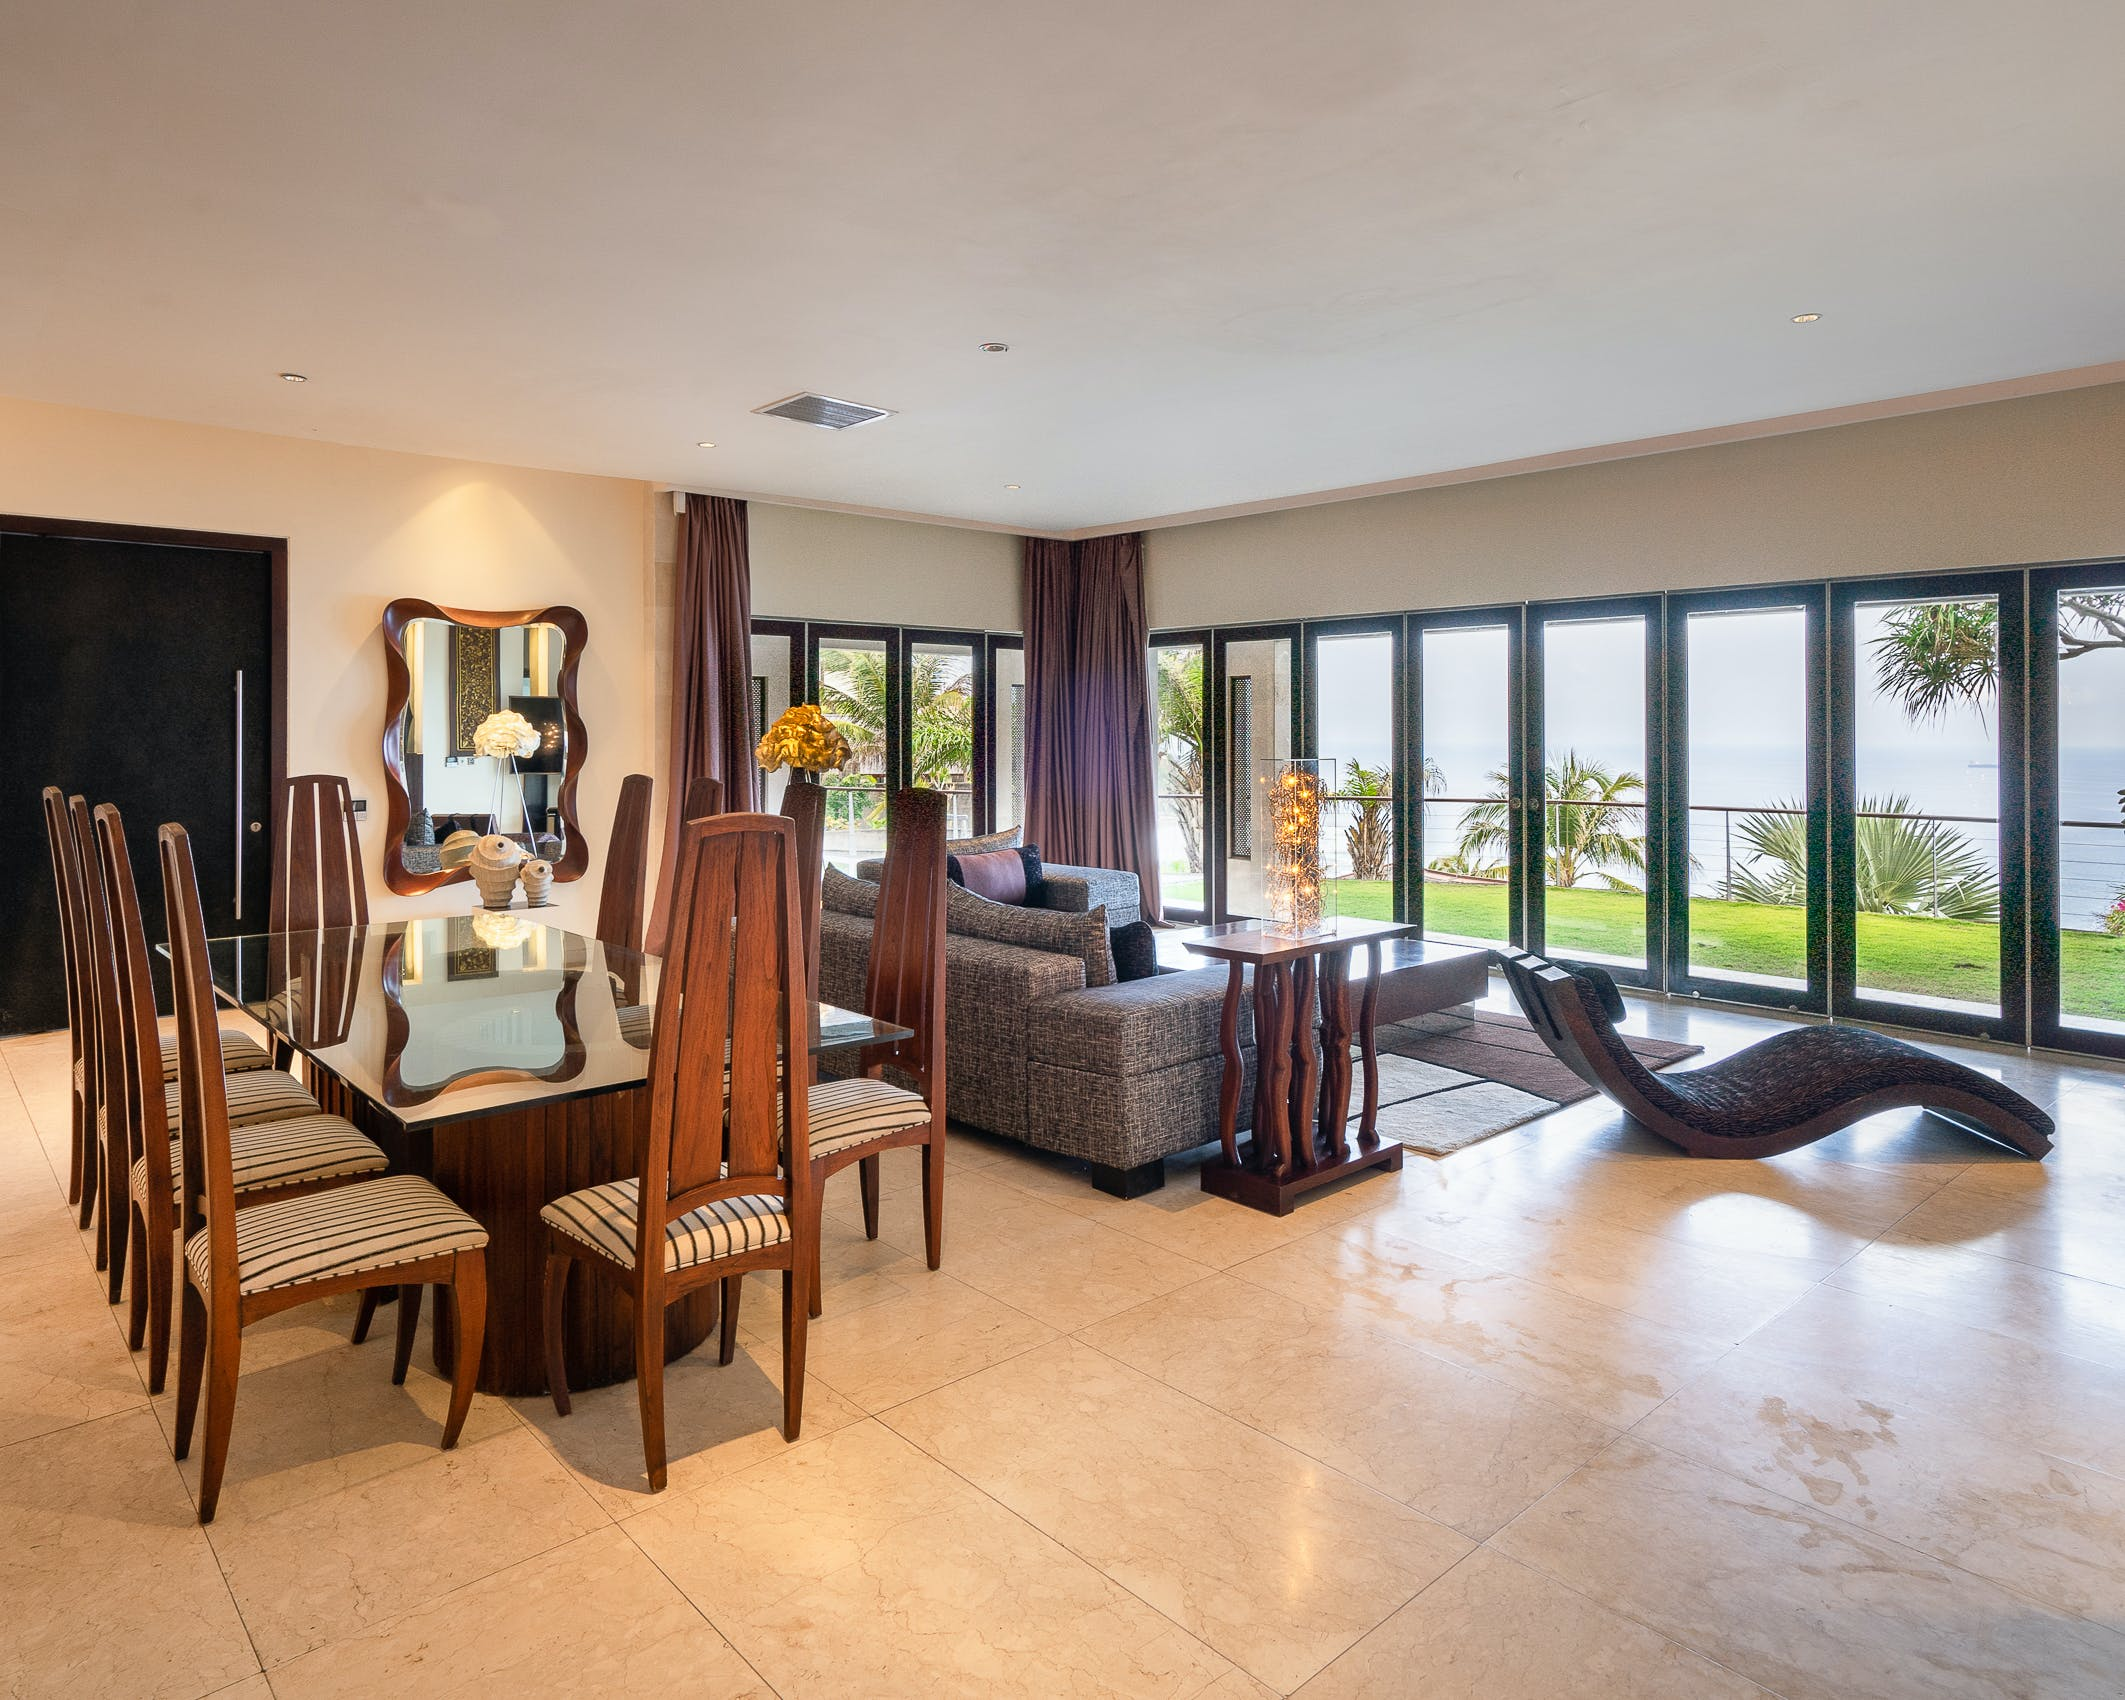 The Shore Villa at The edge Luxury Villa Resort, Uluwatu Bali